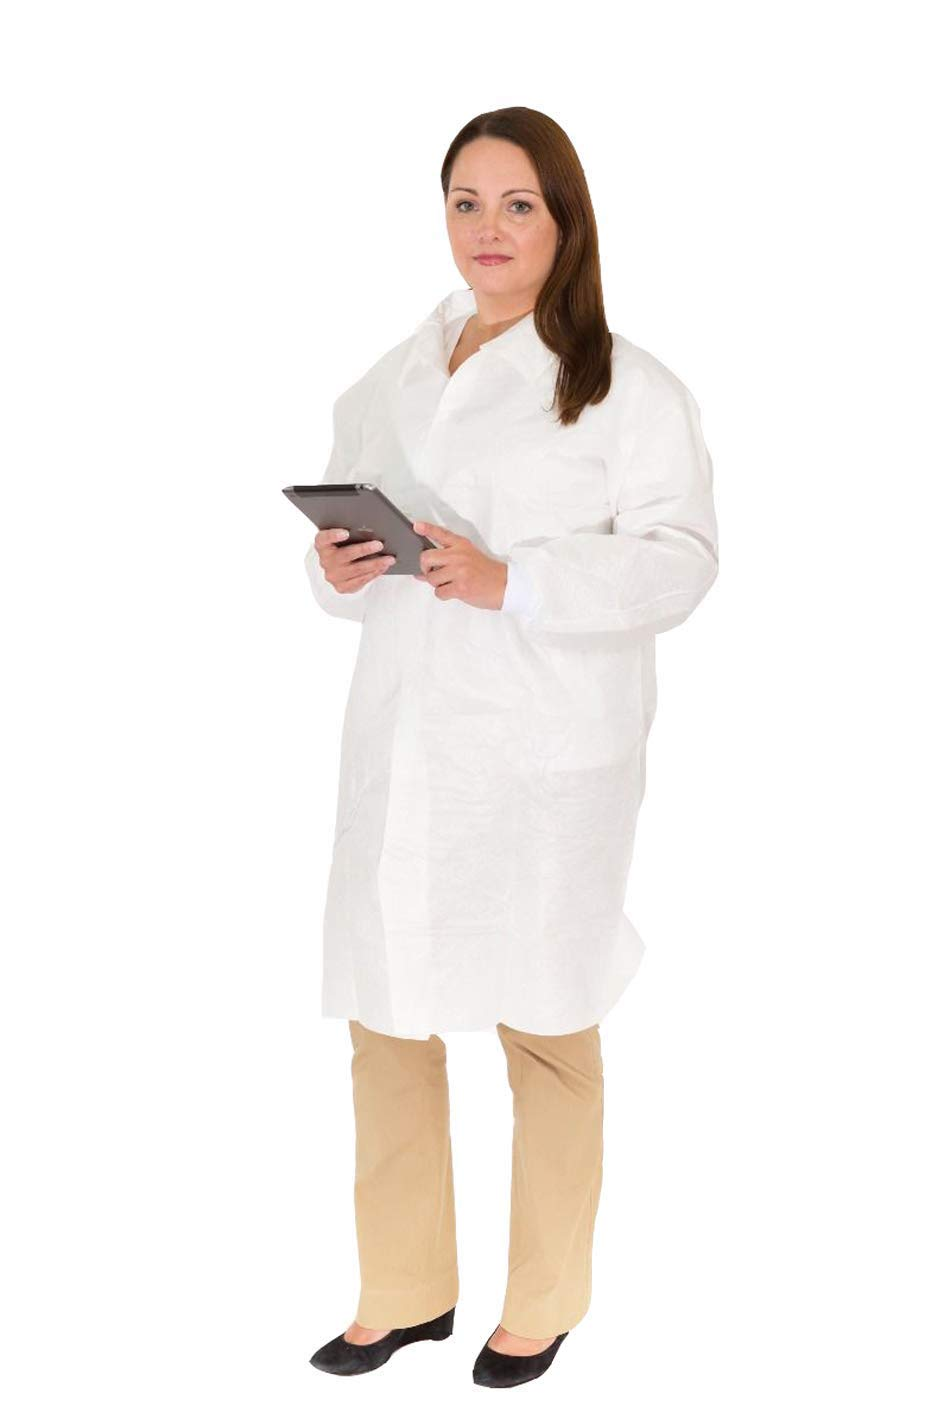 Body Filter 95+ Lightweight Disposable Lab Coats (No Pockets) | Breathable Cool Material -Extra Durable and Comfortable for Professional Laboratory + Medical Use (Case of 50) (Size: L)